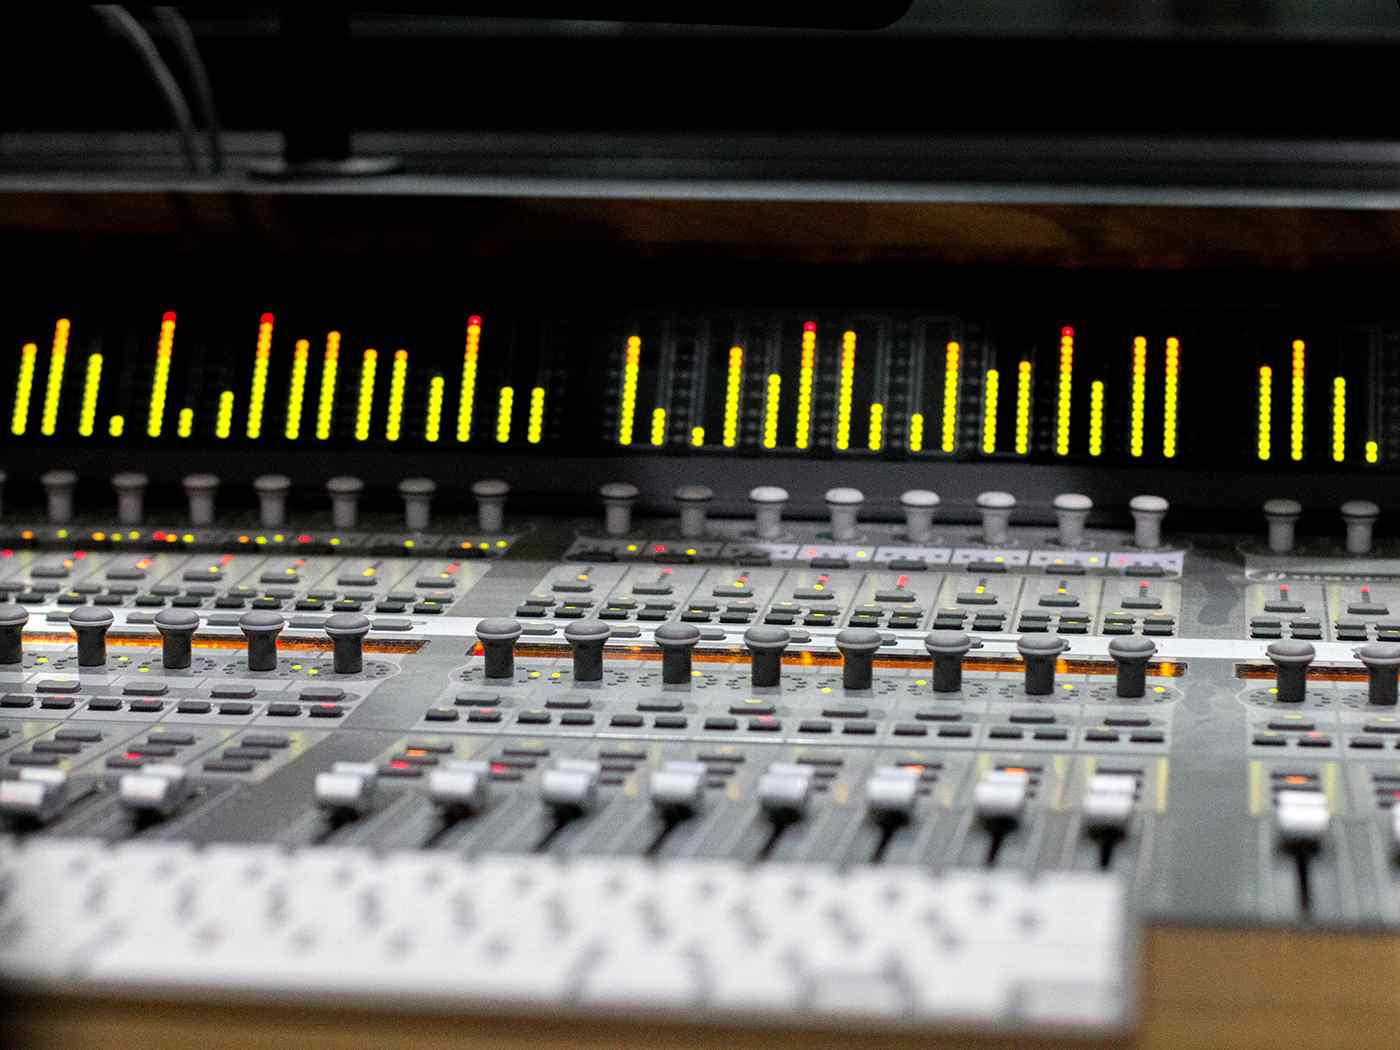 Recording music on control desk.